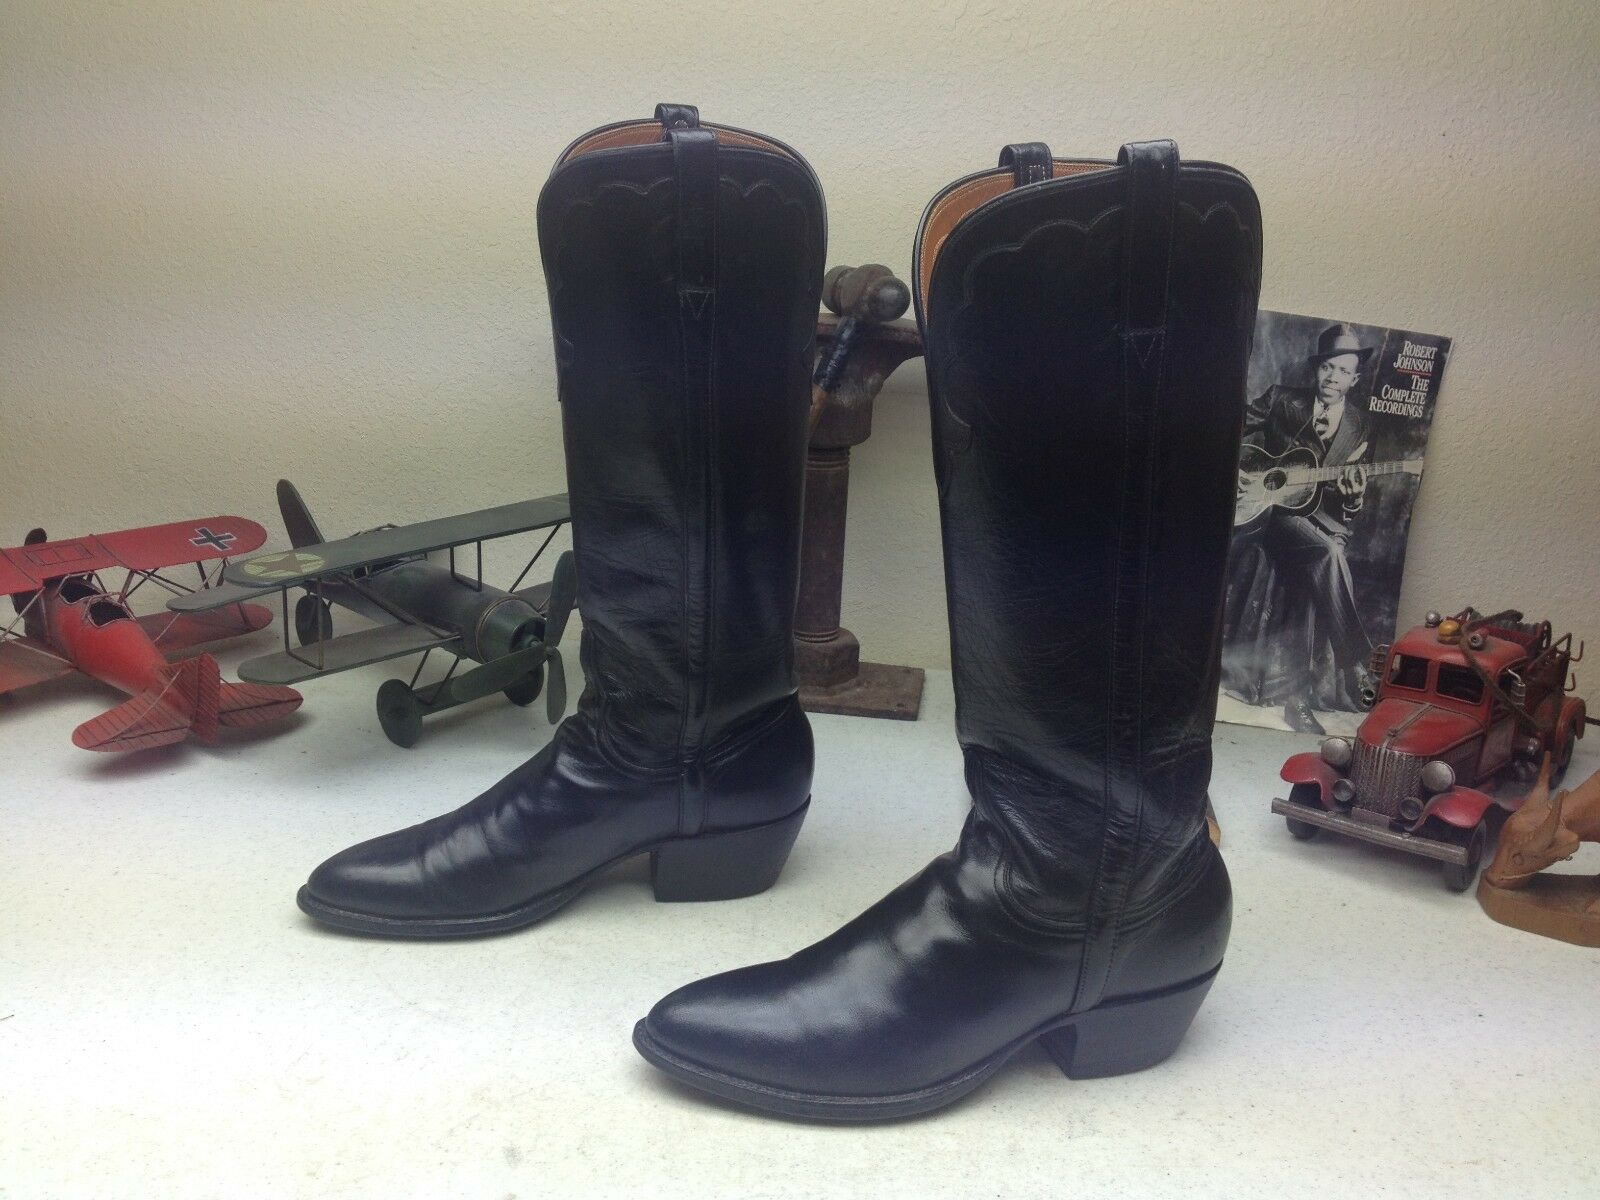 BLACK LEATHER CAVENDERS BOOT CITY DISTRESSED PULL ON WESTERN BOOTS SIZE 7B